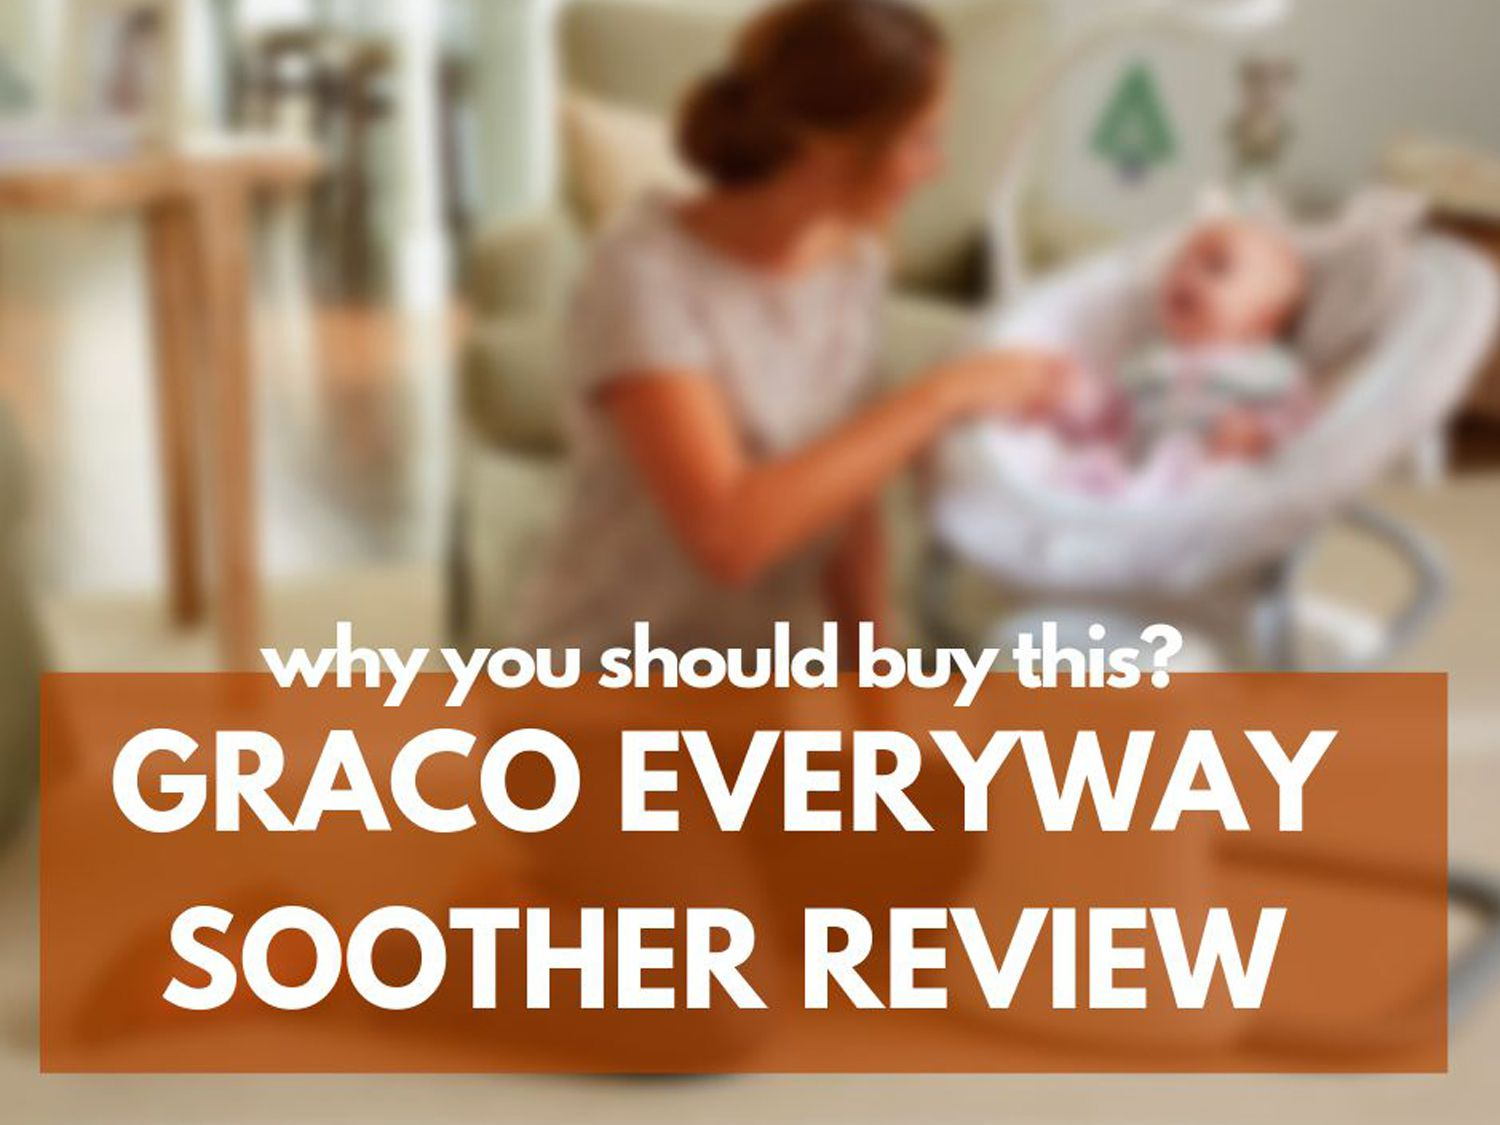 Graco Everyway Soother Thumb